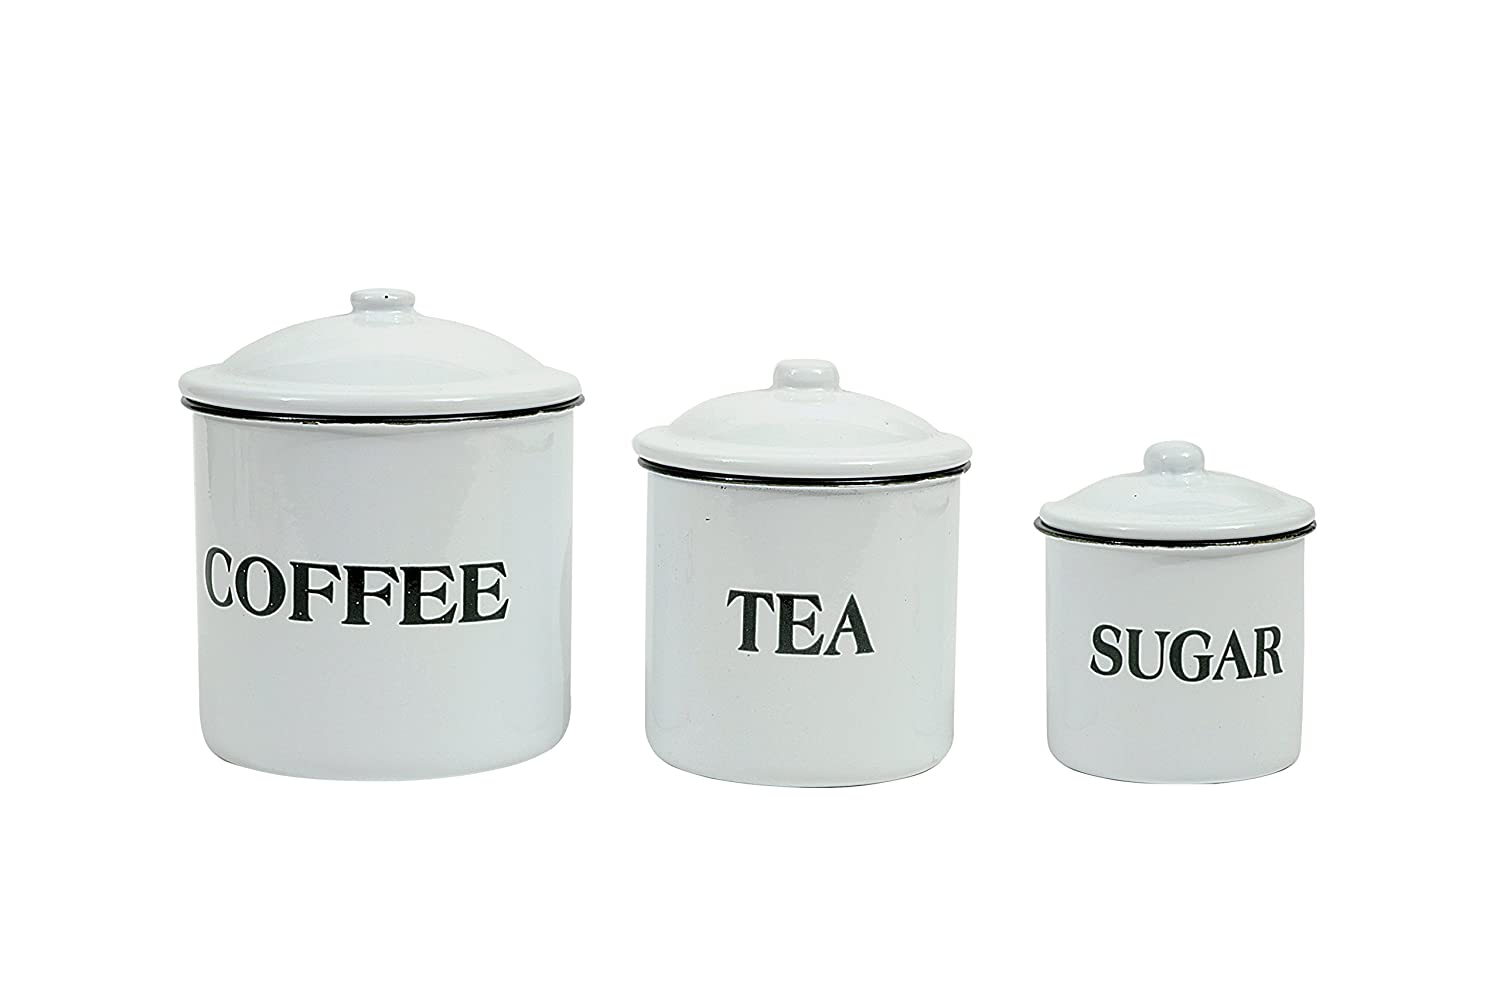 amazon com creative co op coffee tea sugar enamel metal amazon com creative co op coffee tea sugar enamel metal containers with lids set multicolor food savers kitchen dining